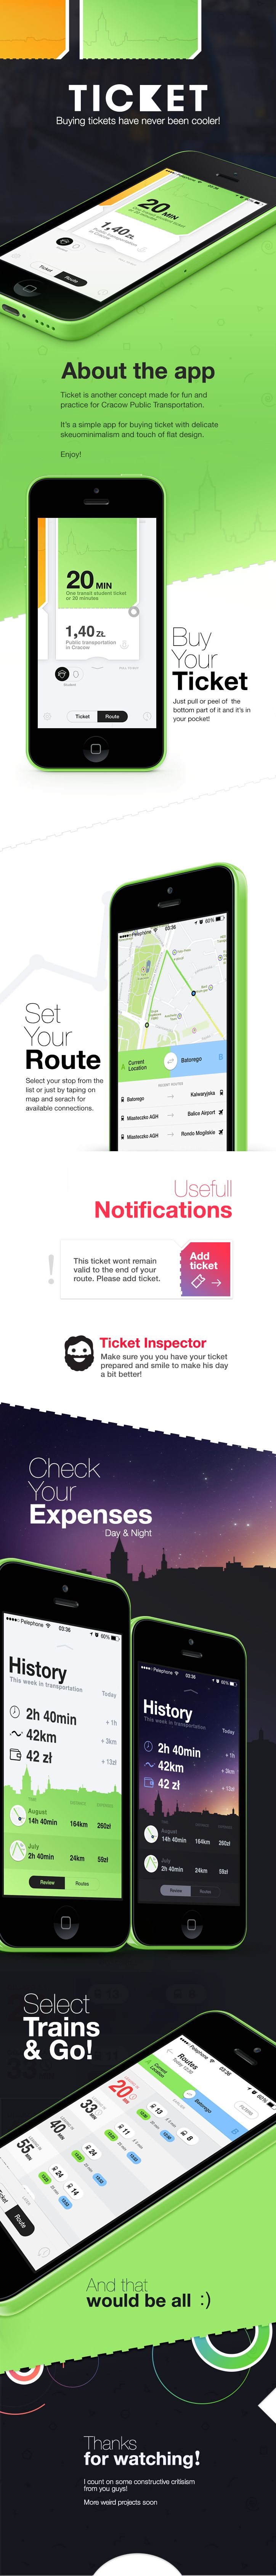 Ticket #App https://www.behance.net/gallery/19678177/Ticket | #mobile #SoLoMo